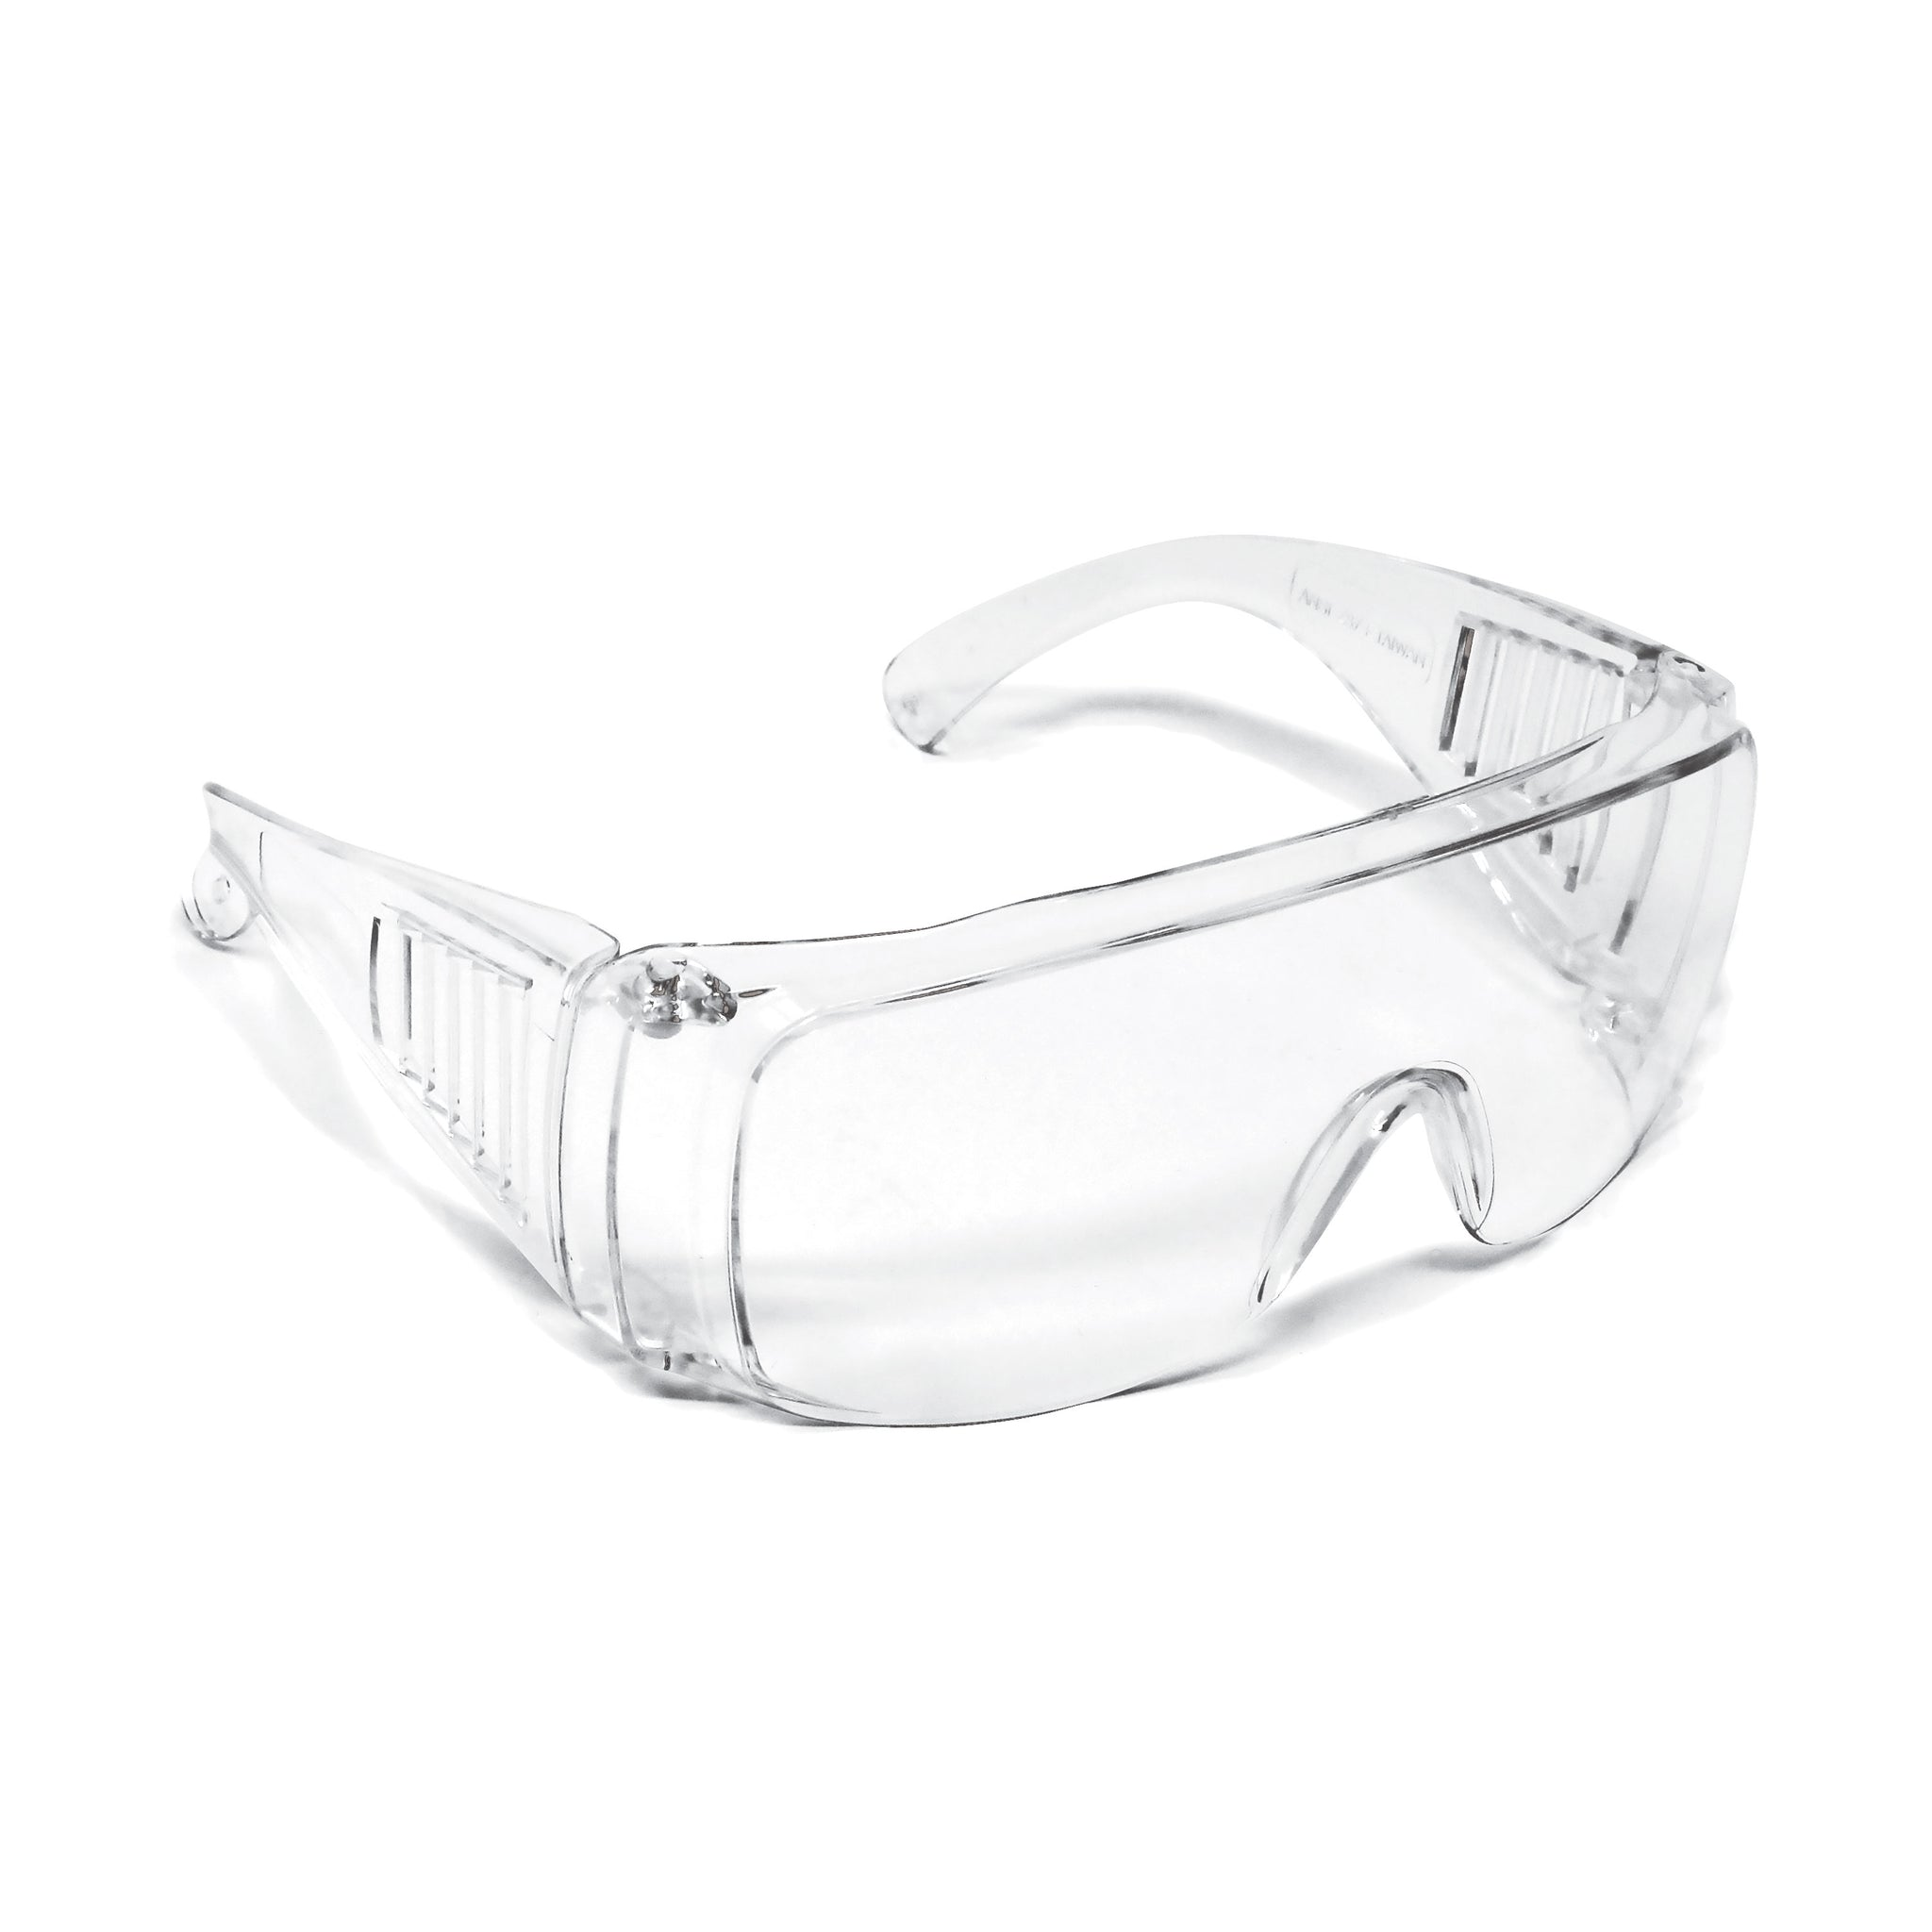 Visitor Safety Glasses Clear (12 Pack)